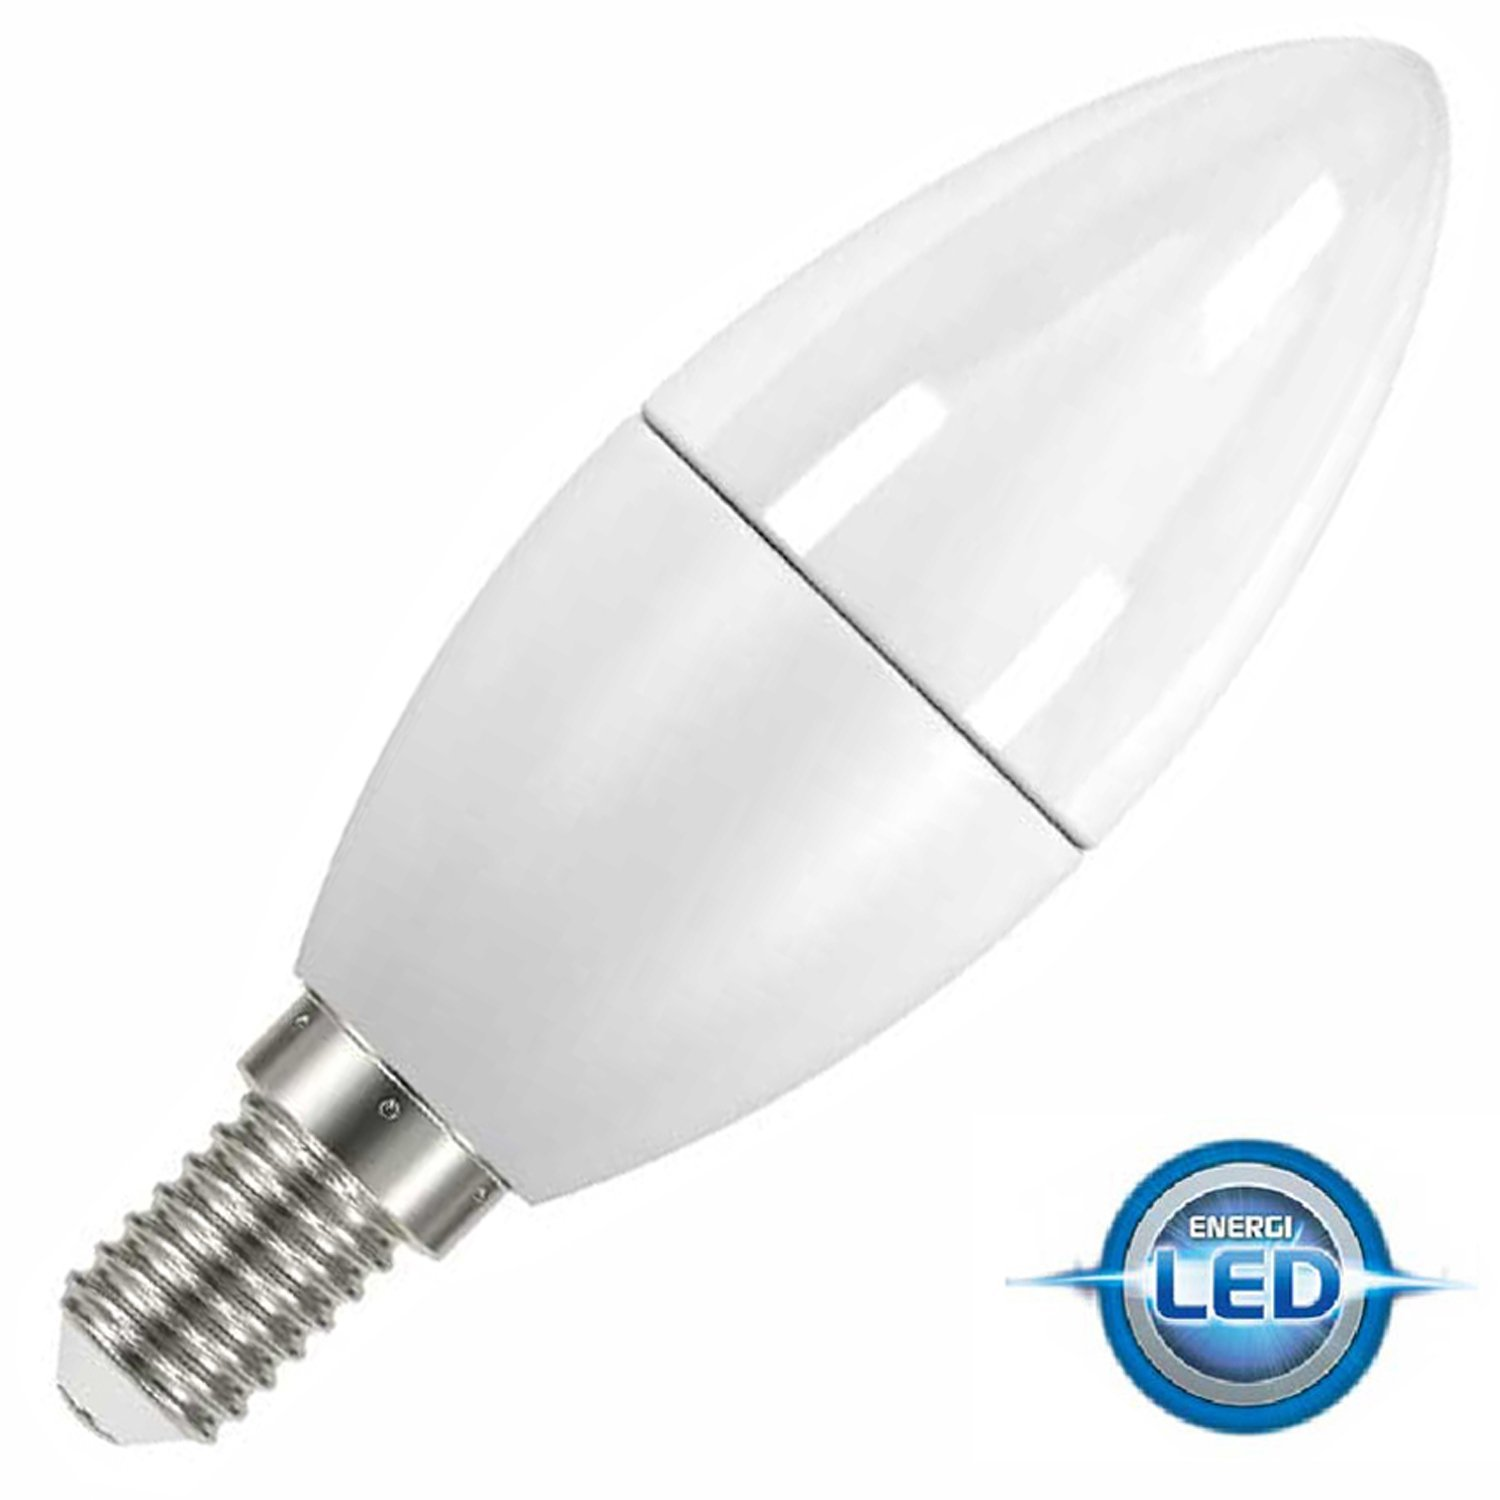 latest technology in lighting. powersave quality lighting 35w led ses e14 golf ball shape 2700k warm white energy saving light bulb a rated latest technology 25w in